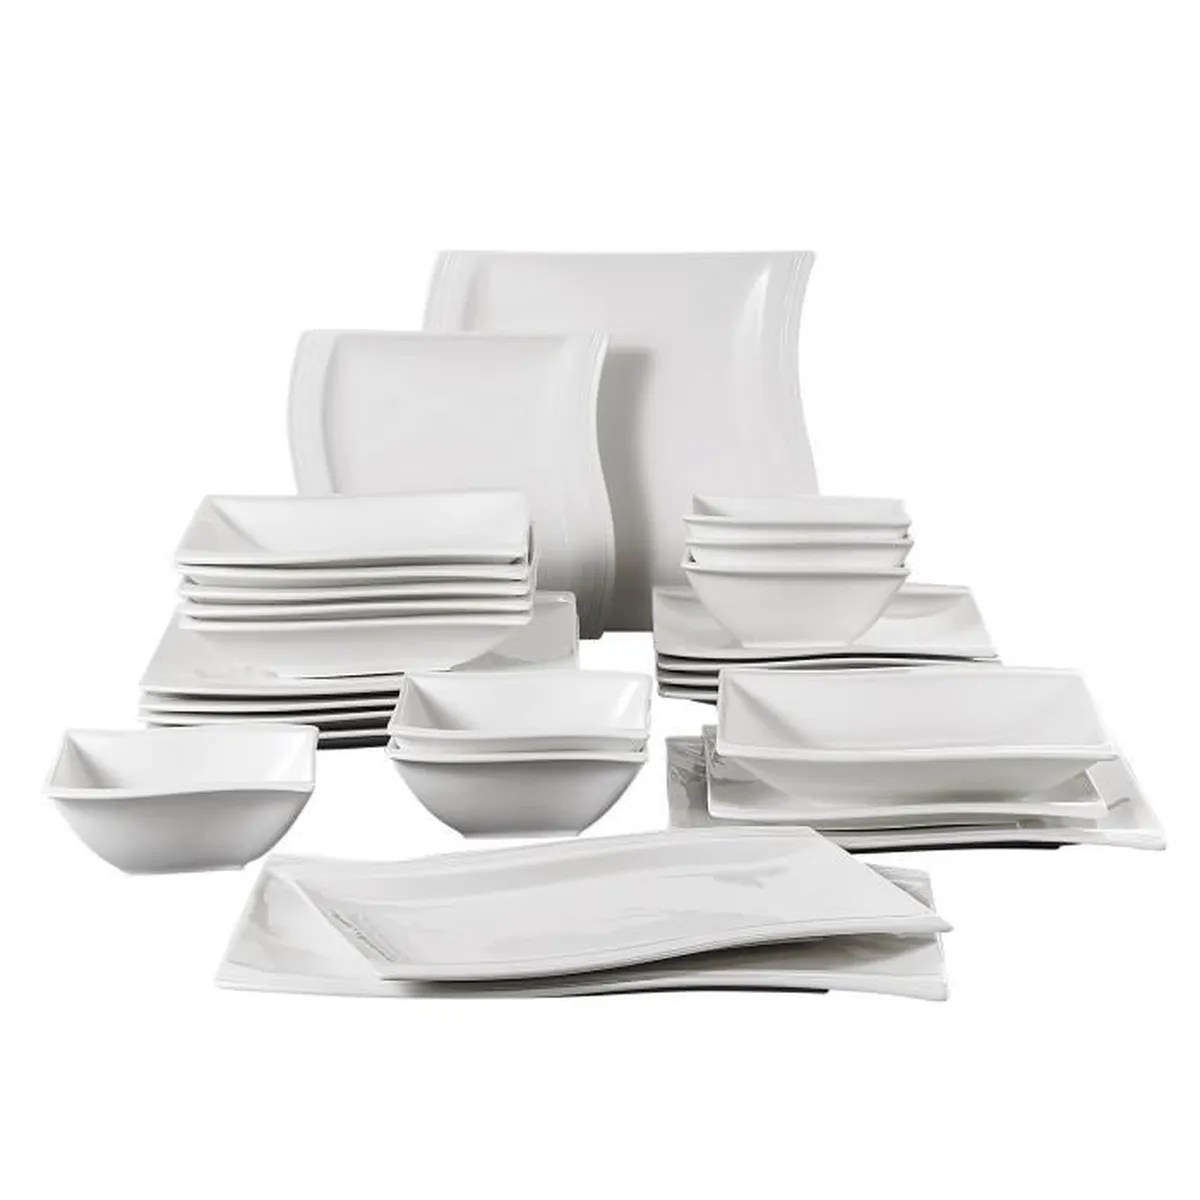 Tafelgeschirr Set Malacasa Série Flora 26pcs Service De Table Porcelaine 6